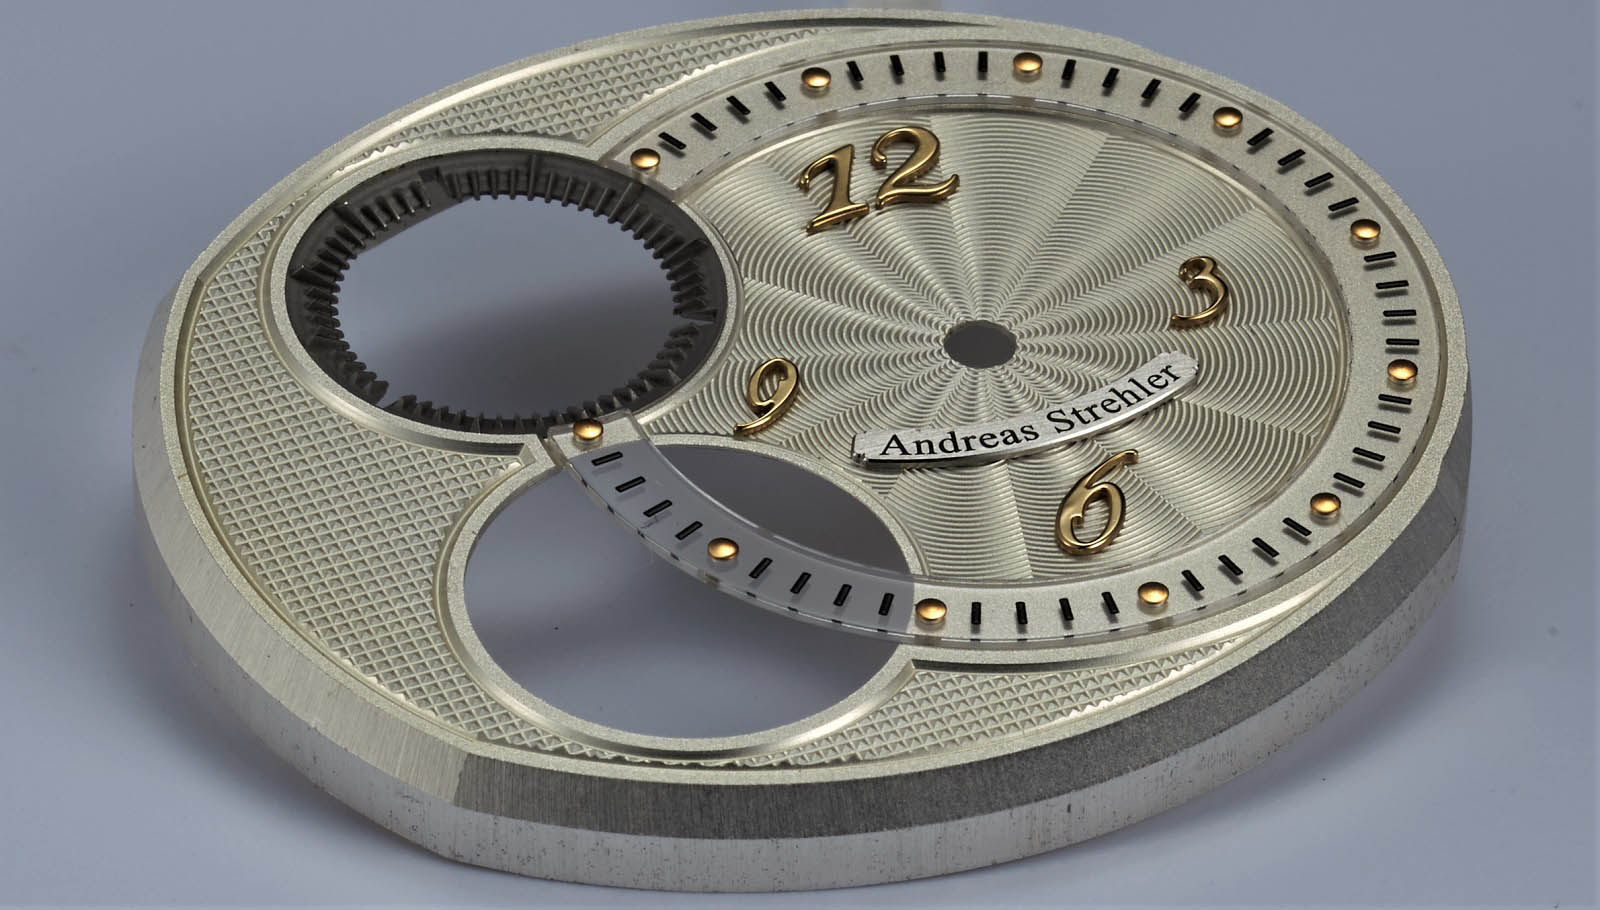 Andreas Strehler Time Zone Watch 35